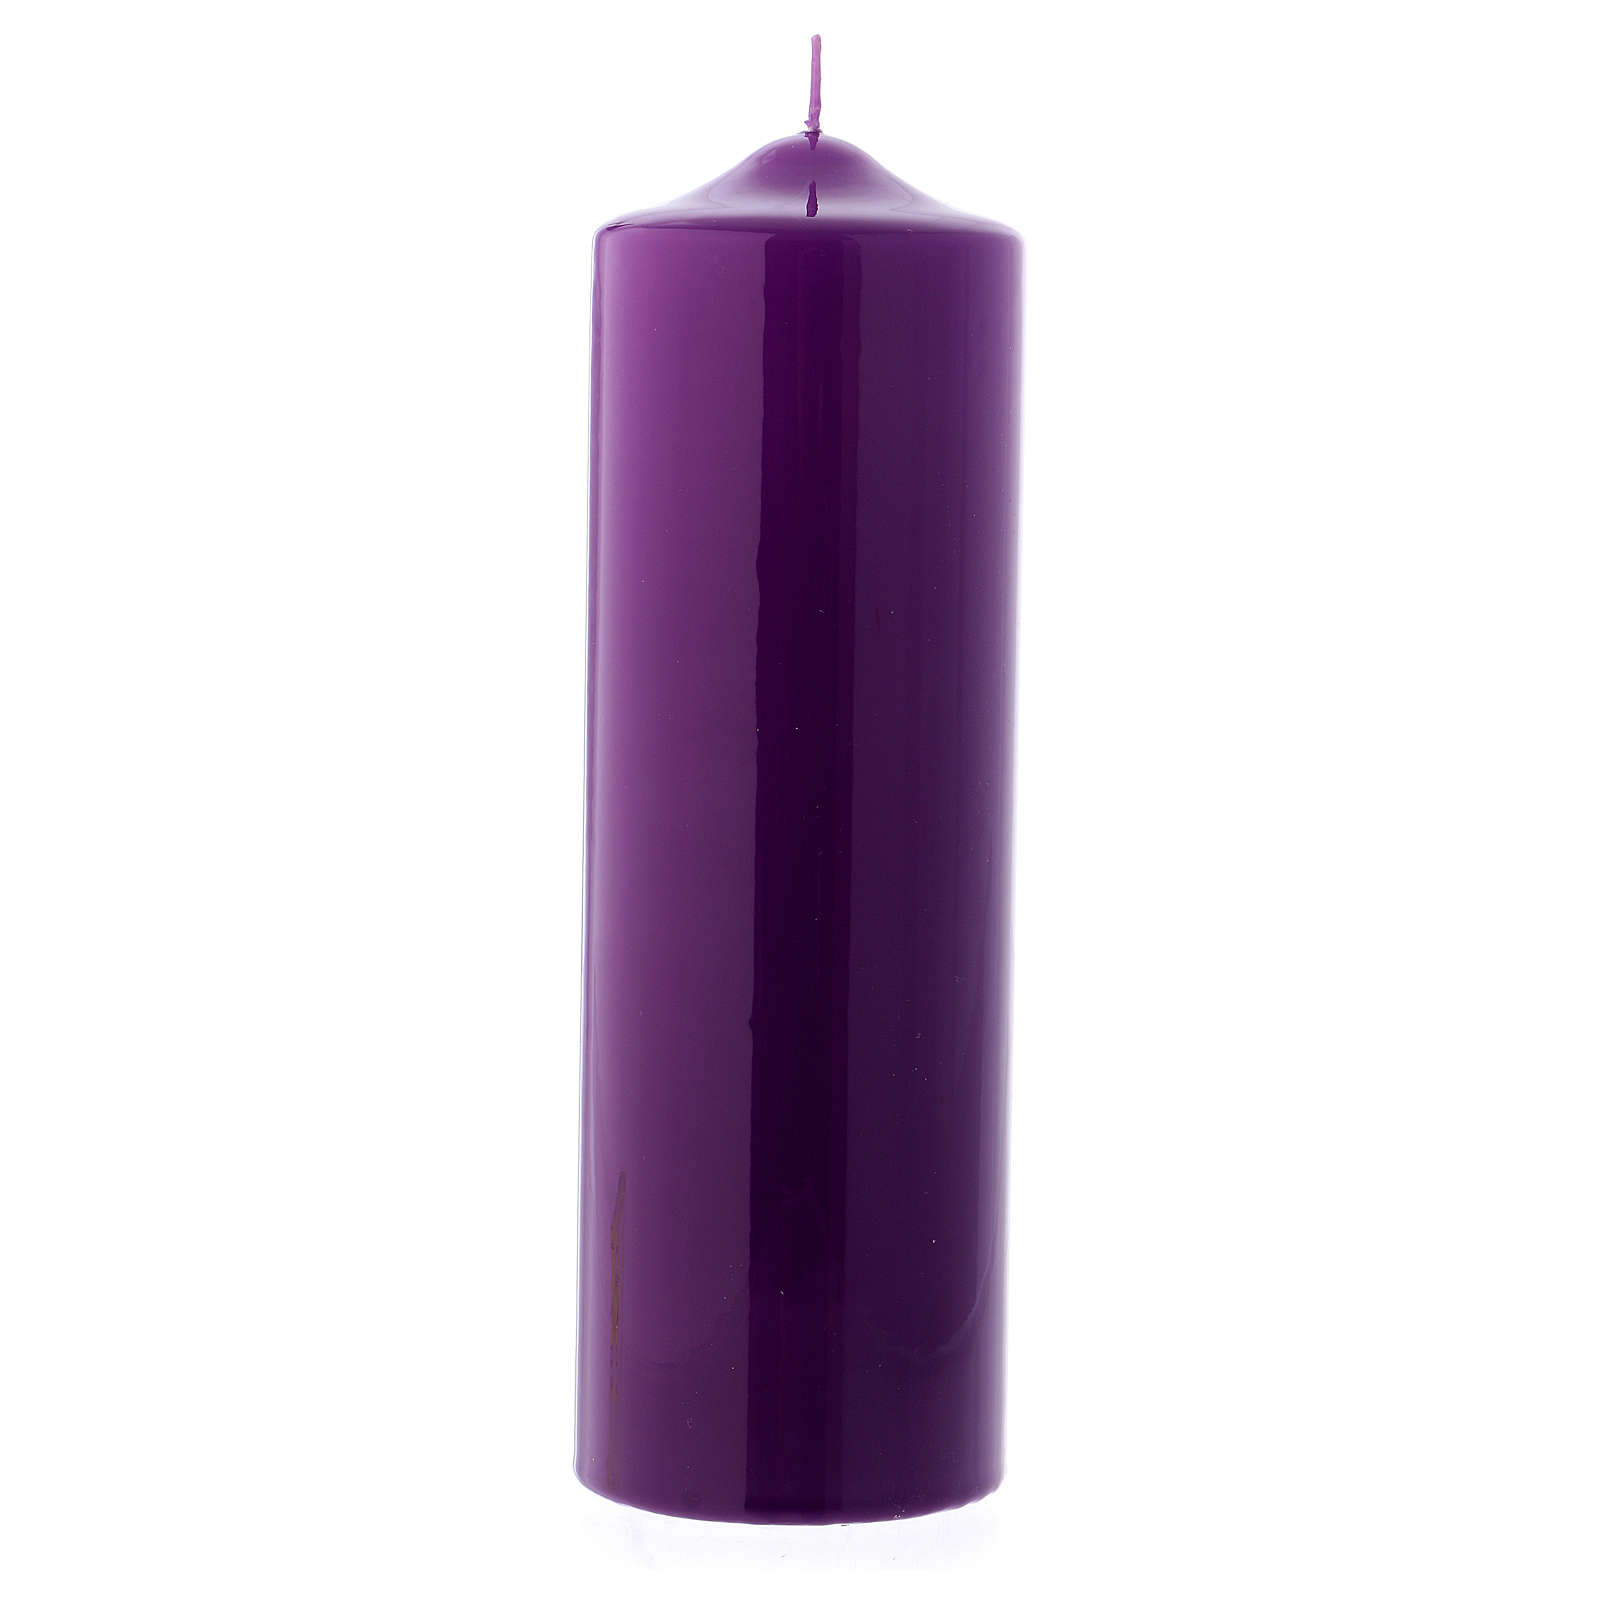 Purple altar candle 24x8 cm, Ceralacca collection 3